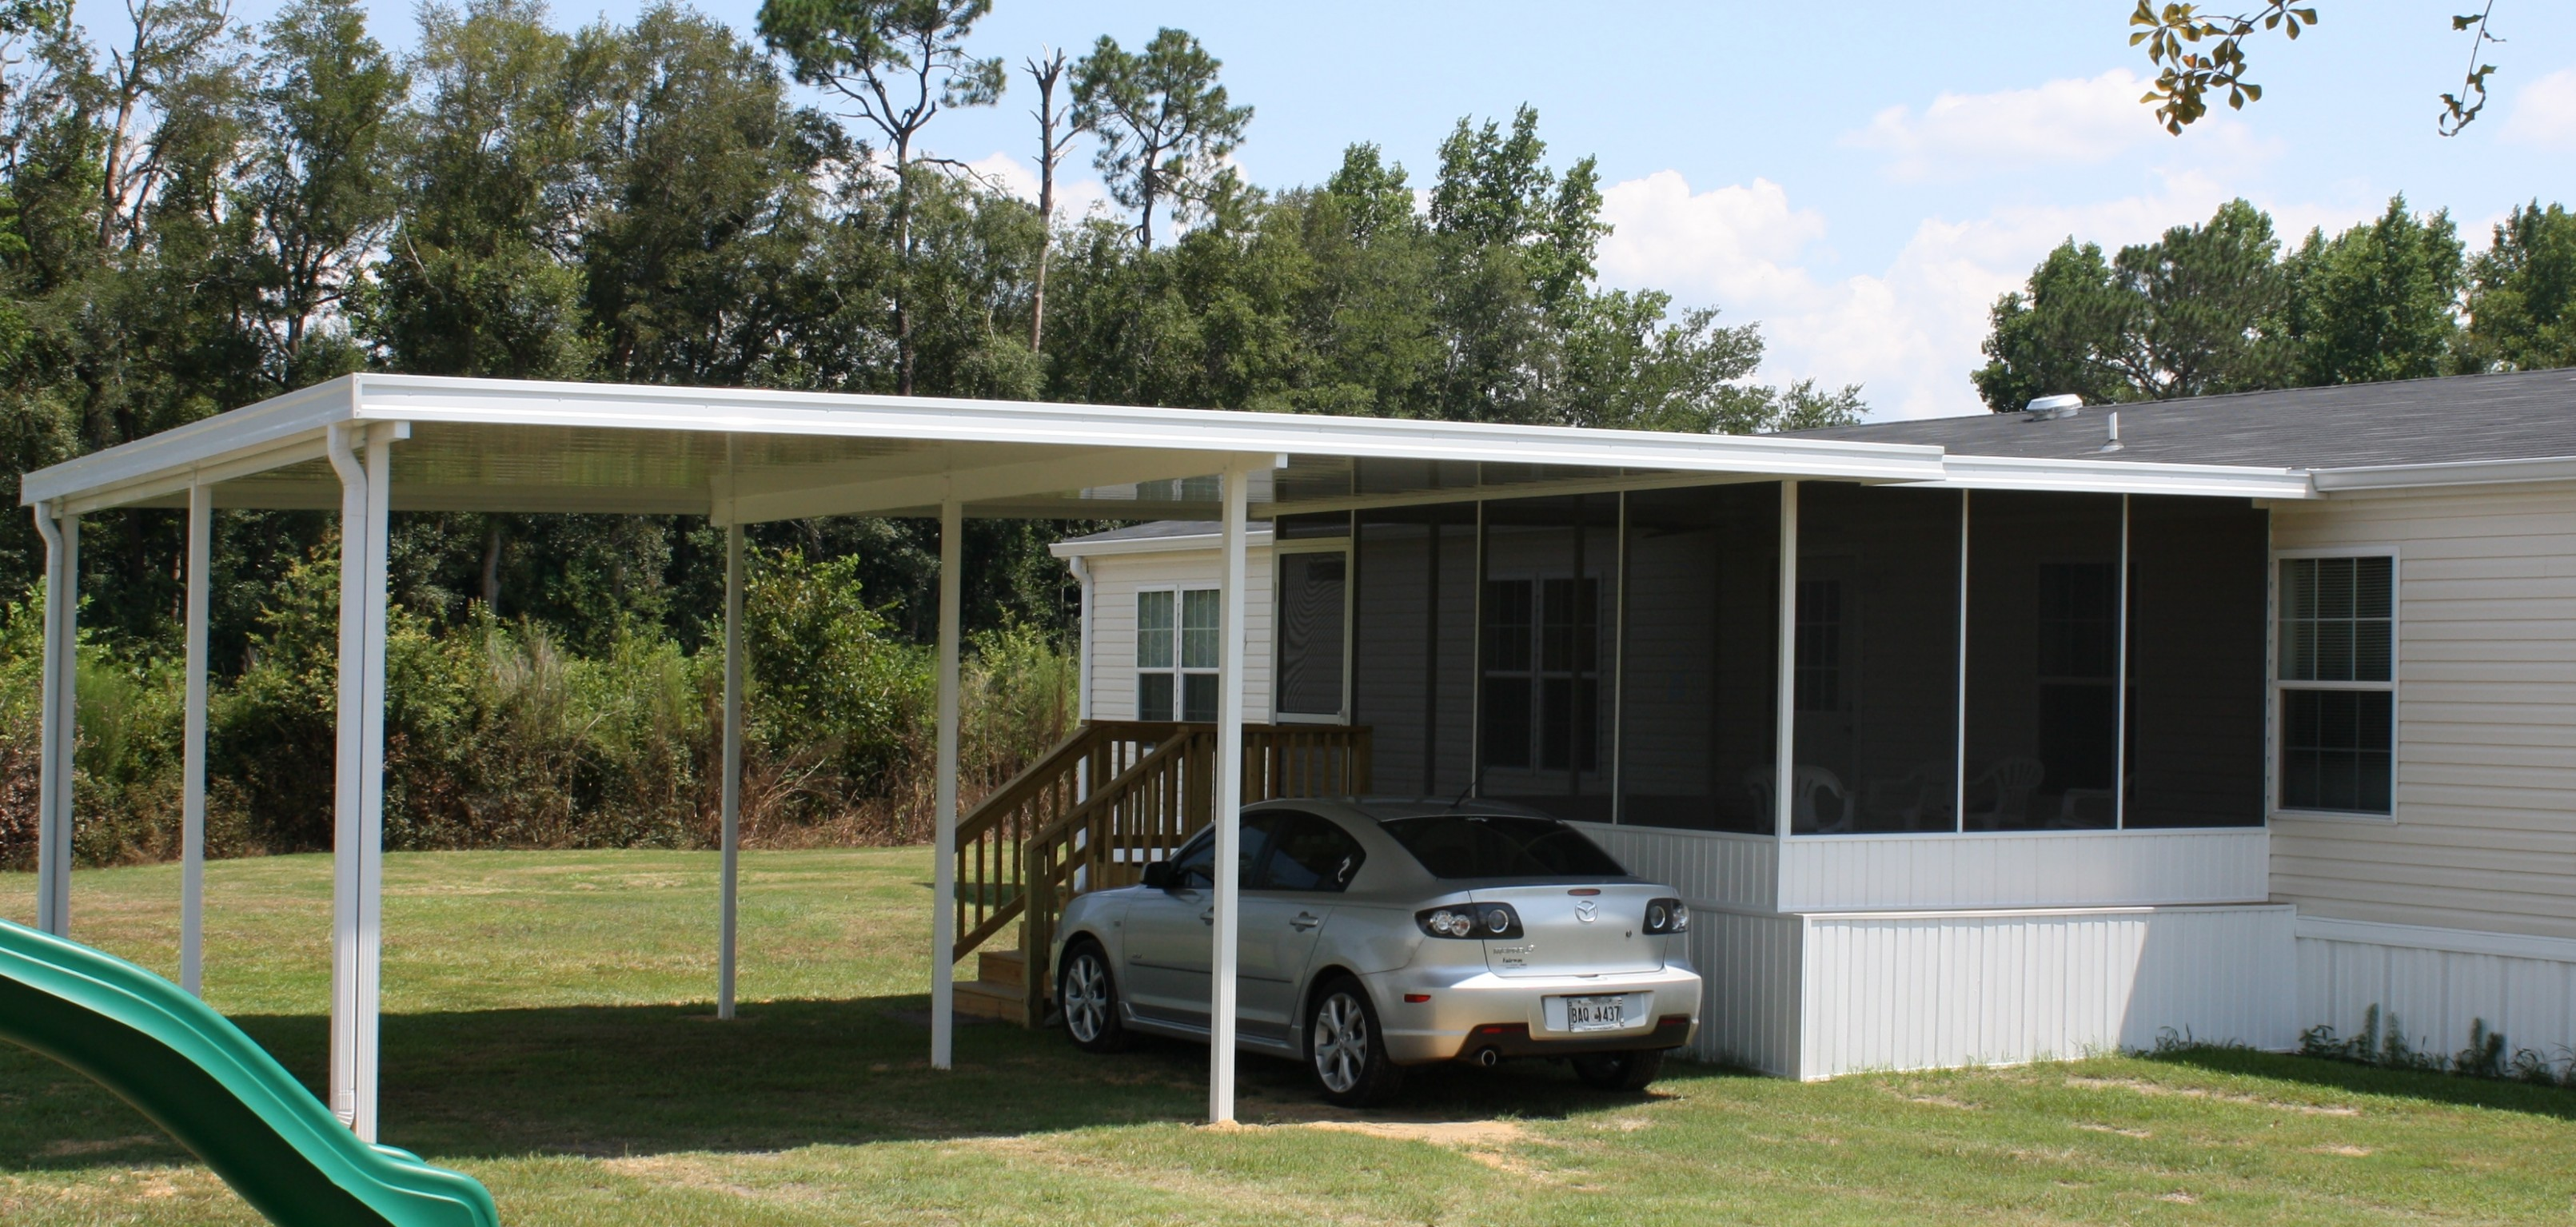 13 Secrets You Will Not Want To Know About Getcarports | getcarports